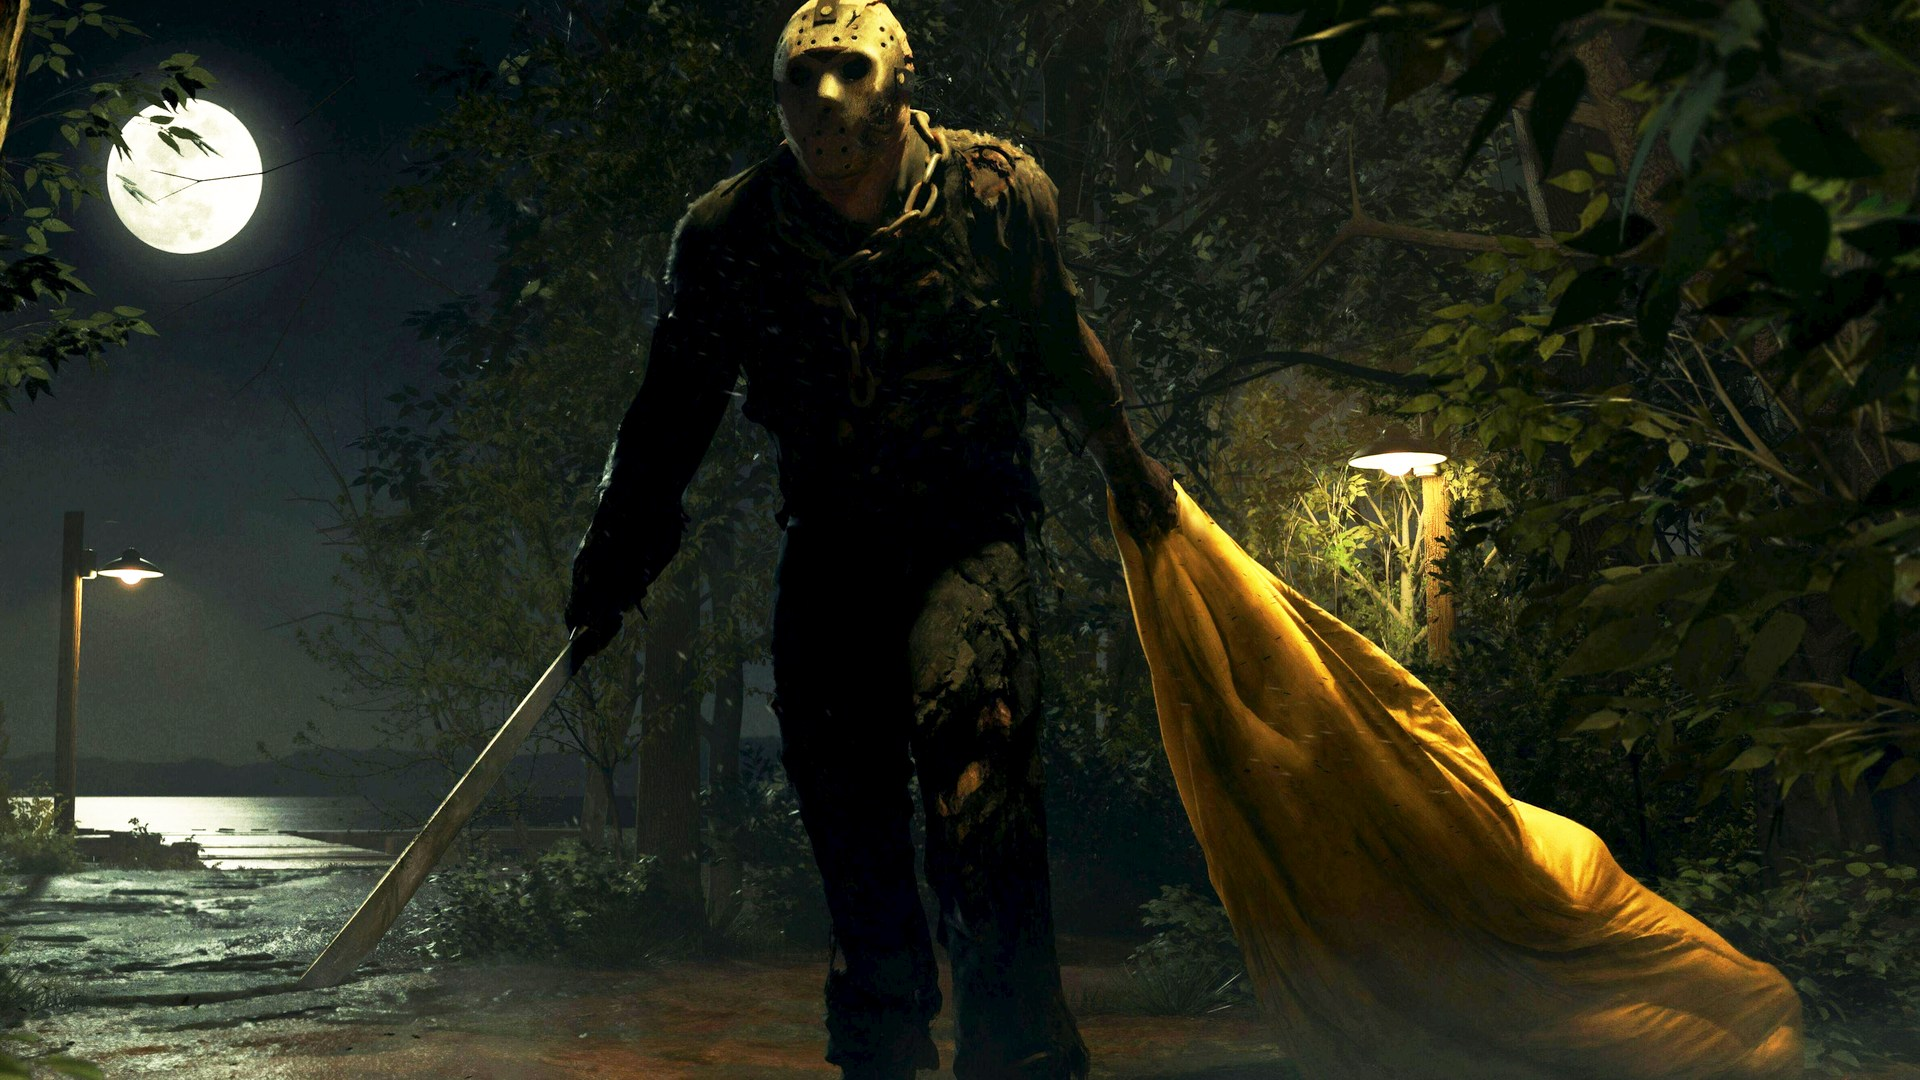 Friday the 13th wallpapers high quality download free - Friday the thirteenth wallpaper ...